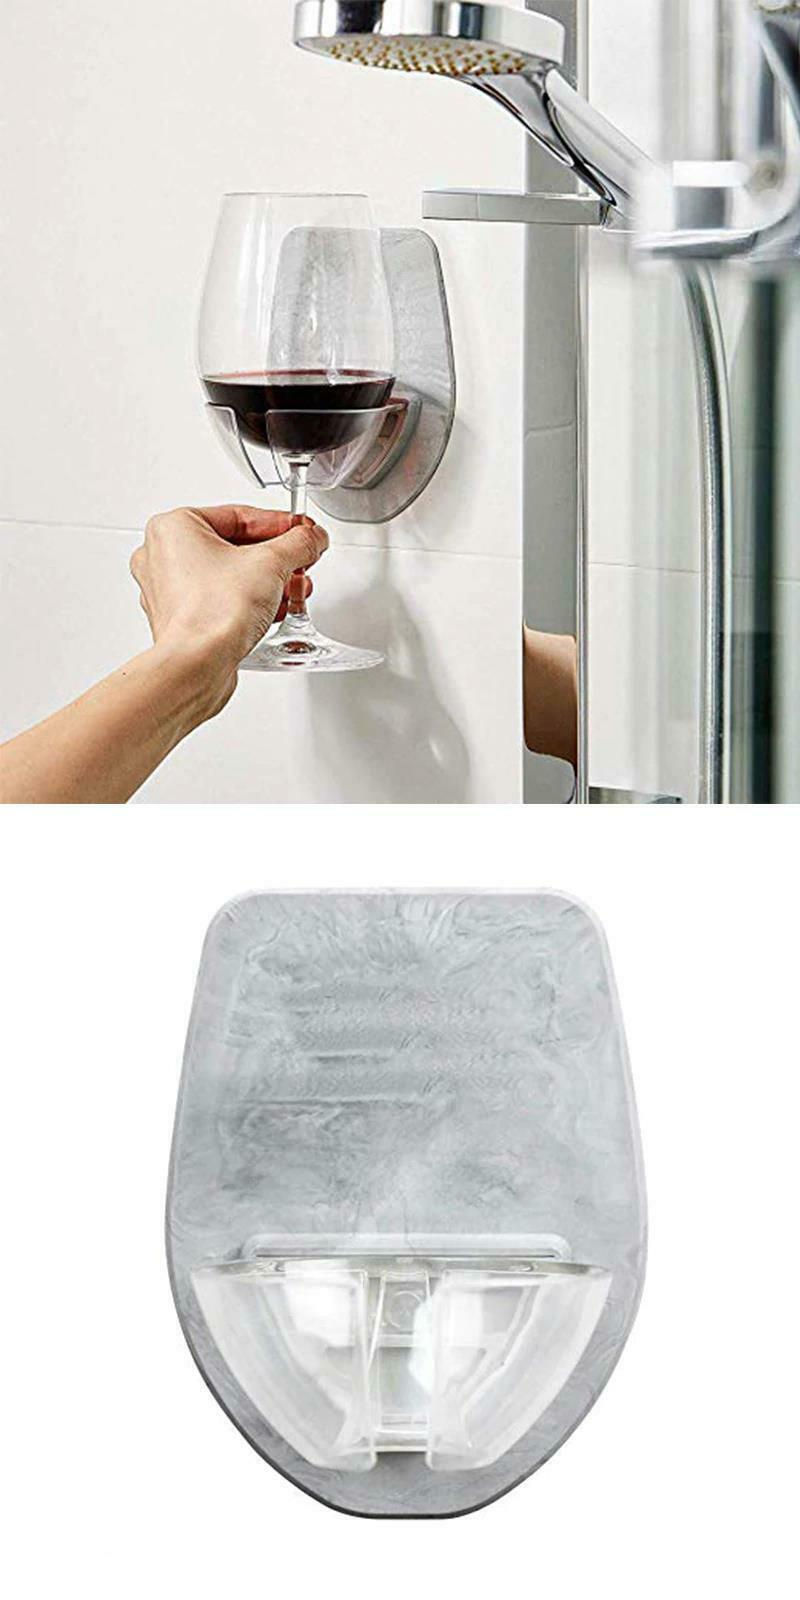 Bathtub Wine Glass Holder Portable Plastic Red Wine Bathroom Kitchen Household image 8